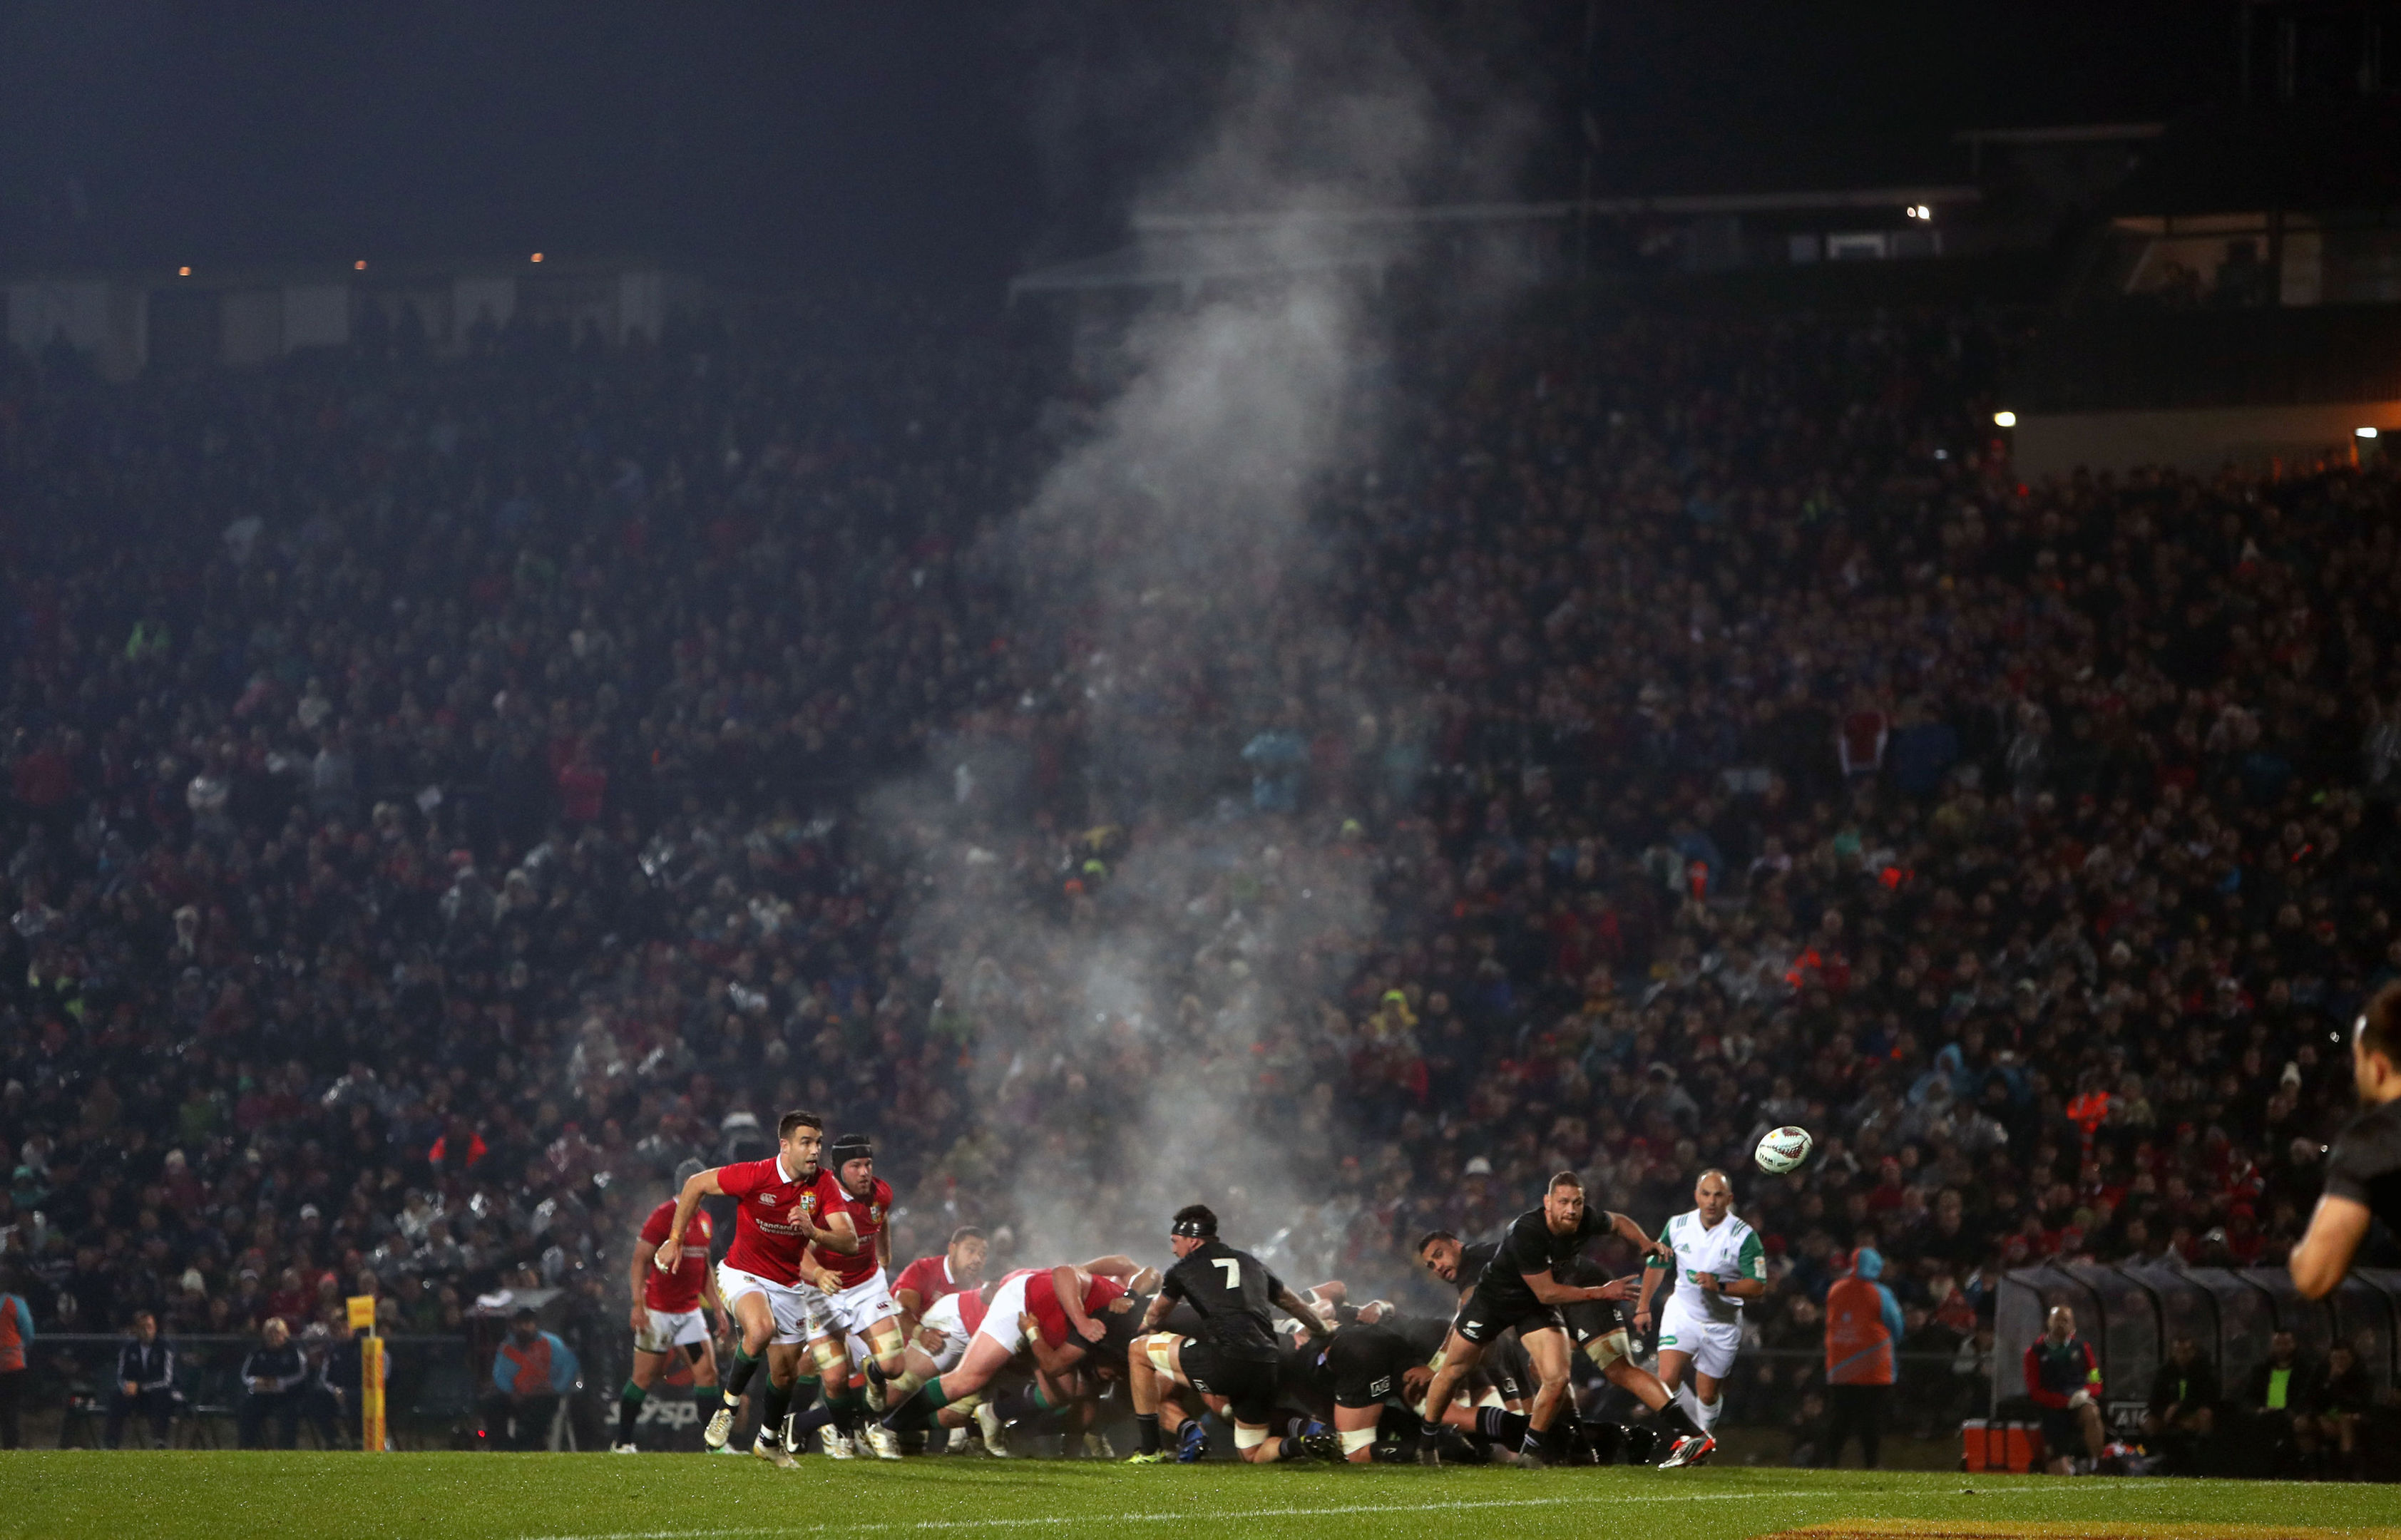 The Lions' setpiece play totally dominated the Maori All Blacks in Rotorua.